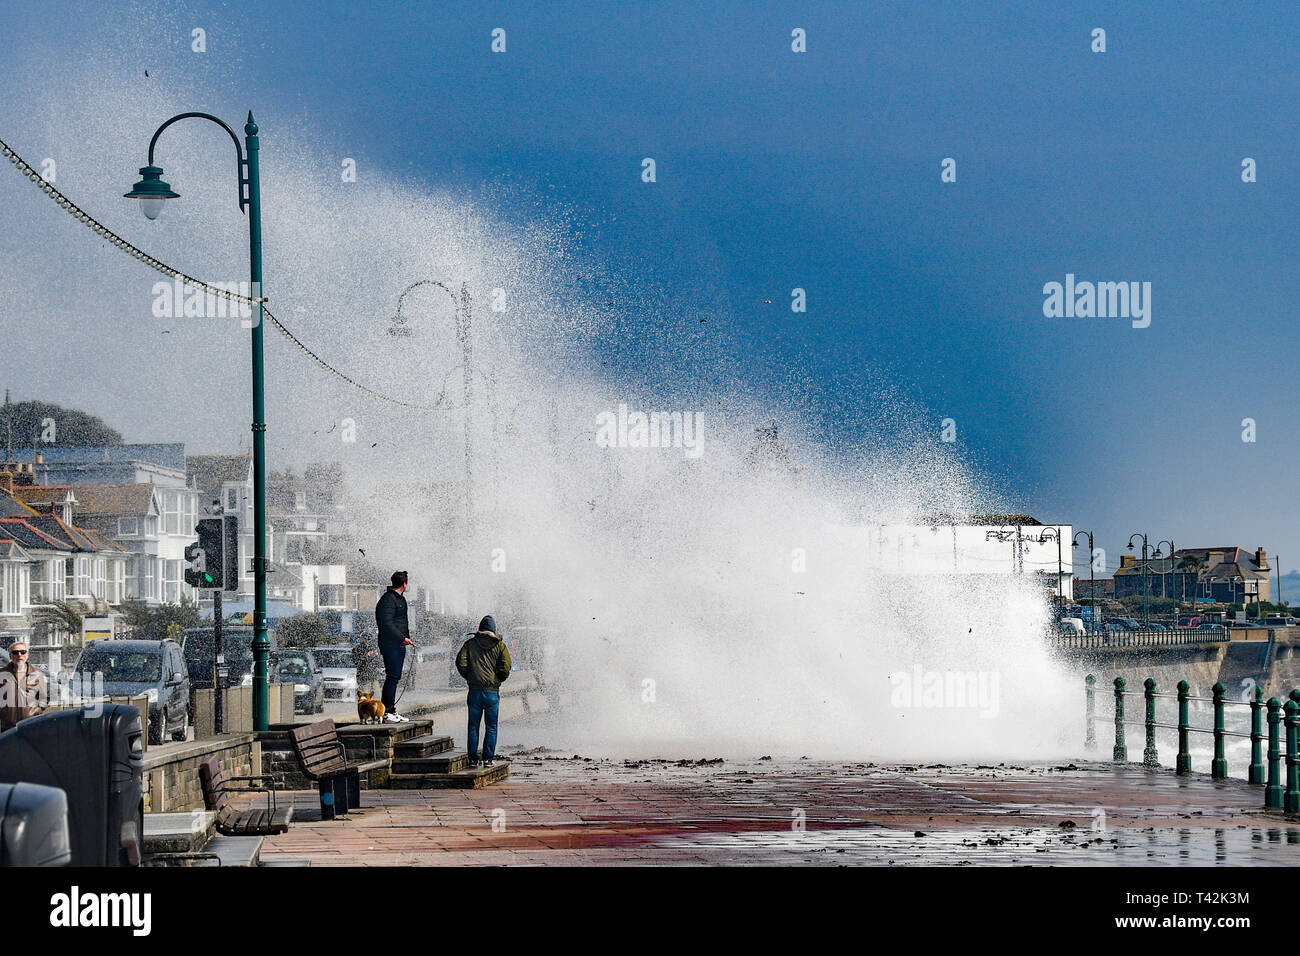 Penzance, Cornwall, UK. 13th Apr, 2019. UK Weather. Despite the sunshine it felt cold on the sea front at Penzance, as the 50mph wind pushed waves over the promenade on the seafront. Credit: Simon Maycock/Alamy Live News Stock Photo